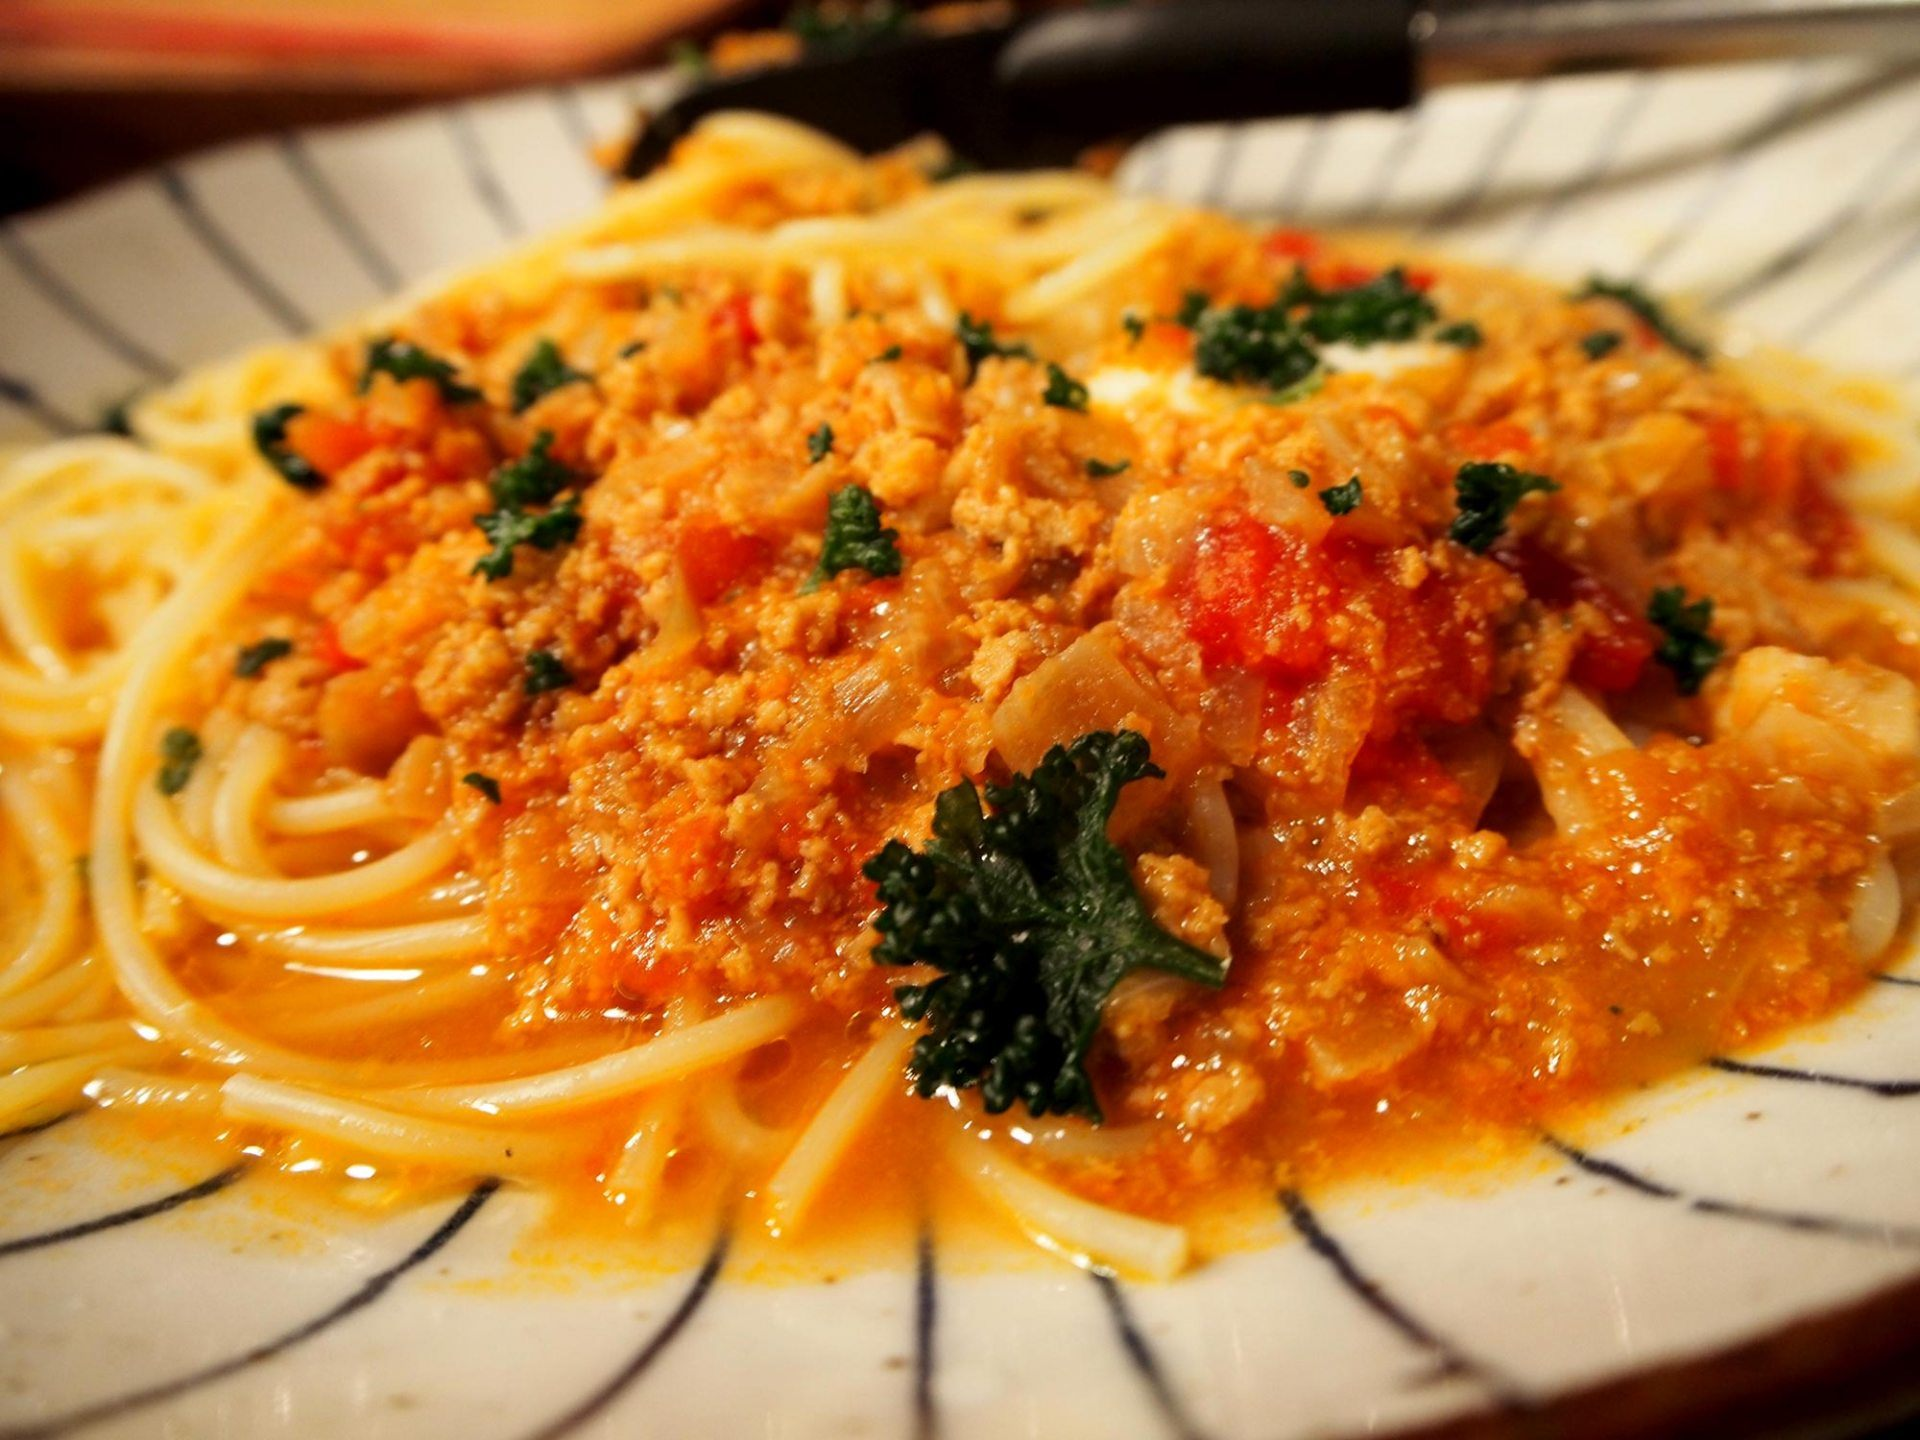 Japanese-style Meat Sauce Pasta with Jidori Chicken and Three Kinds of Cheese 690 yen